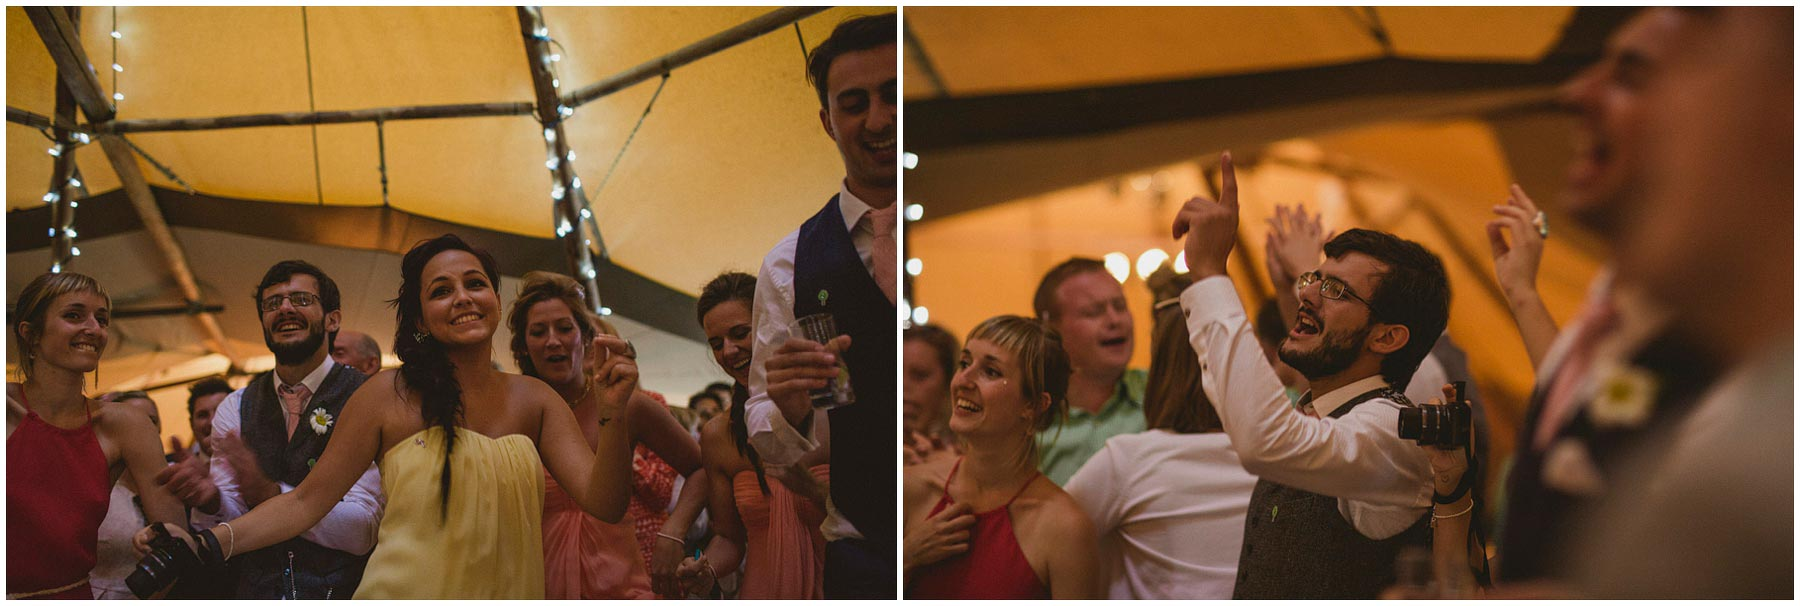 Kent-Festival-Tipi-wedding-photography_0165